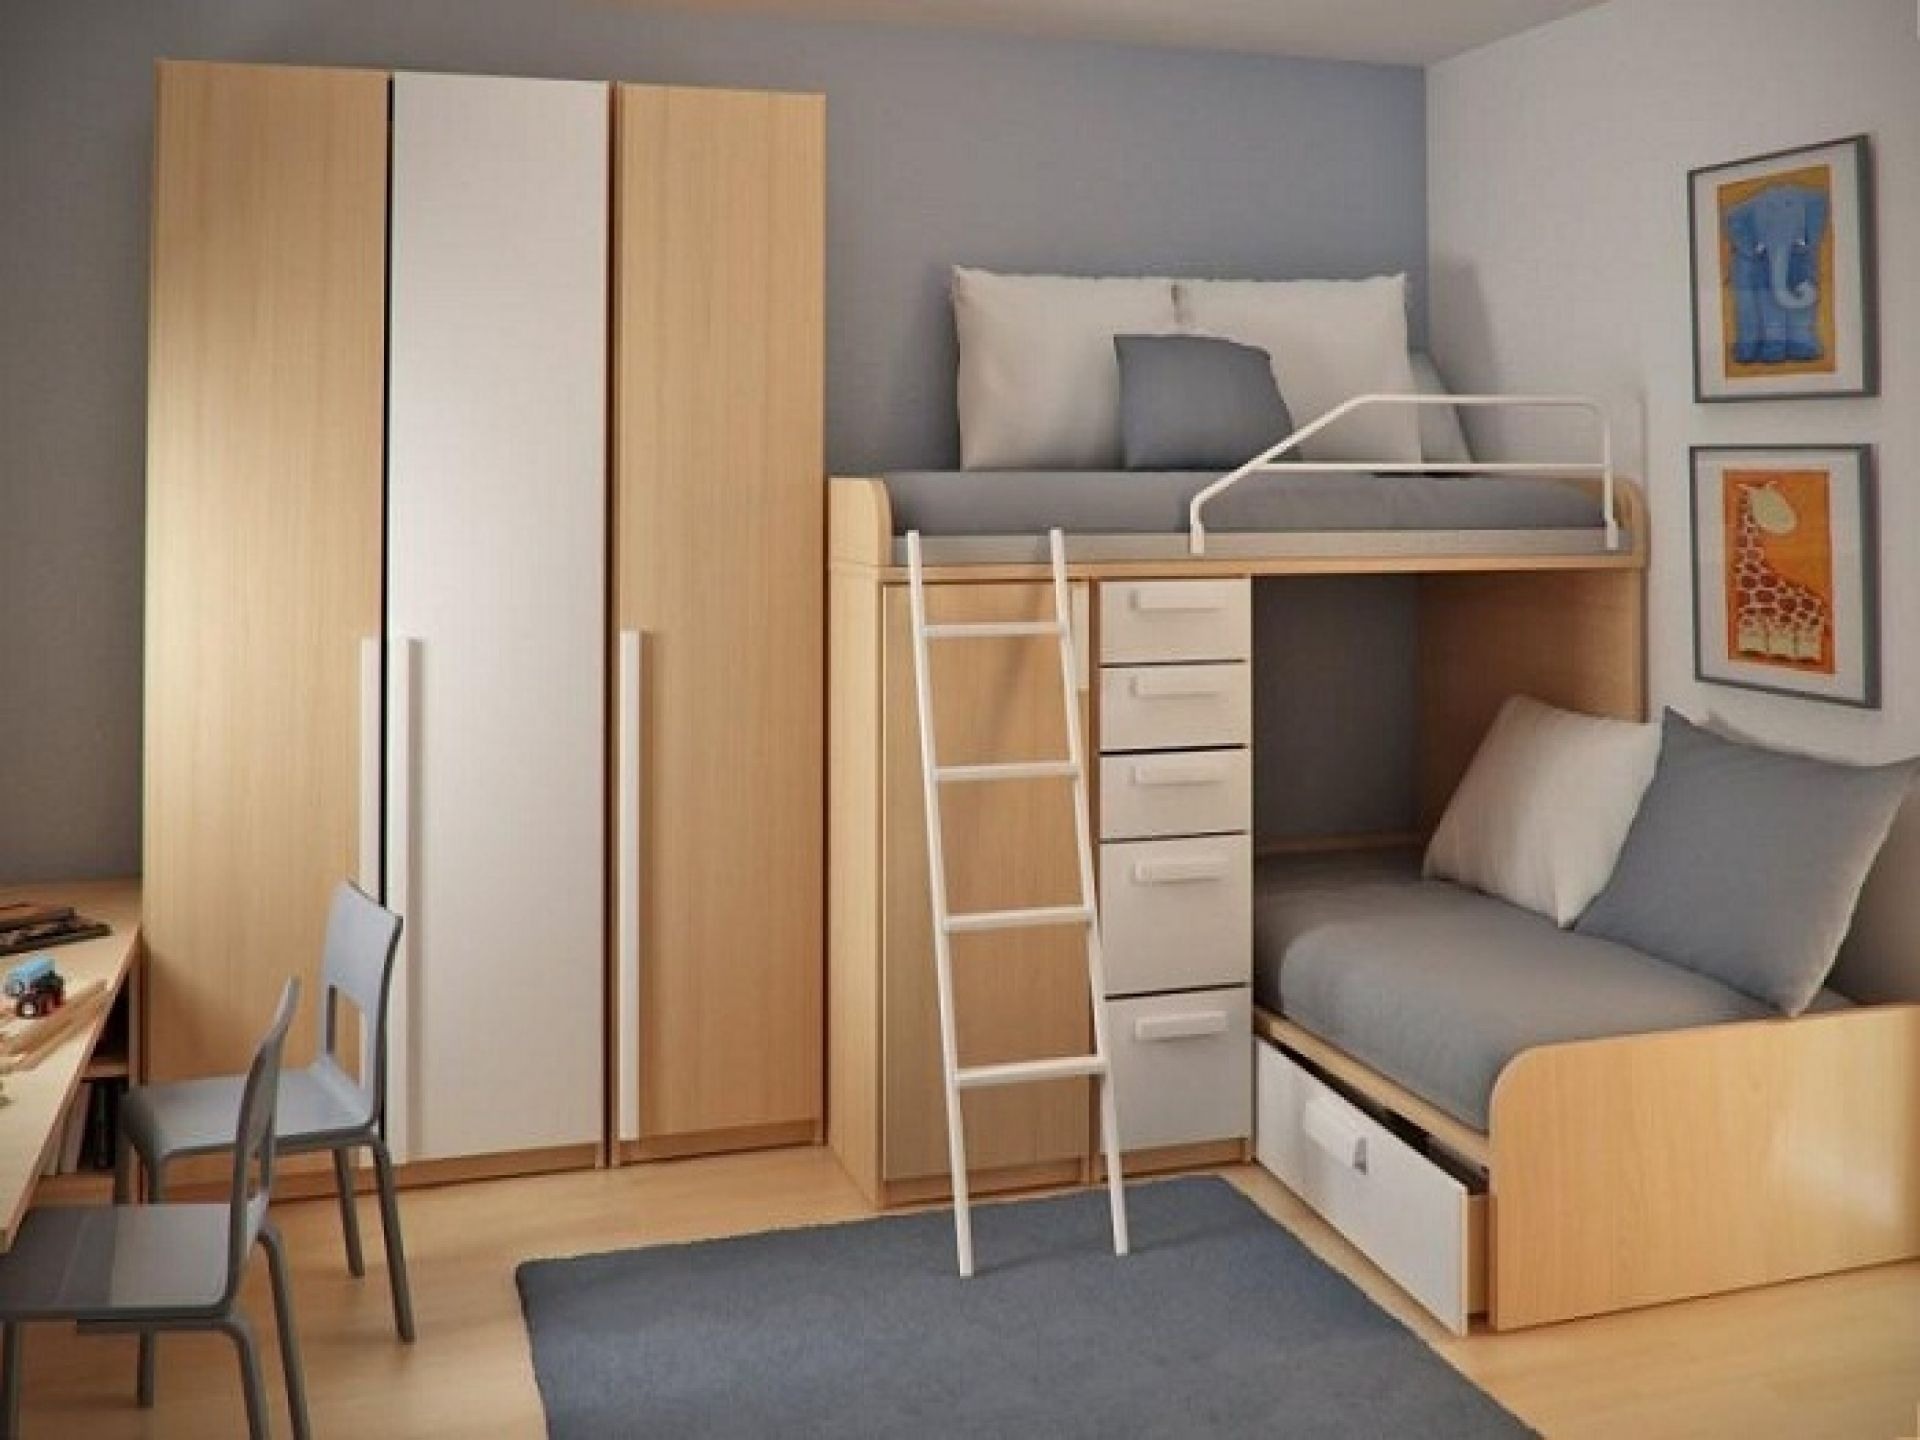 Superieur Bedroom. Brown Wooden Bunk Bed With White Drawers And Stairs Also Having  Storage Under The